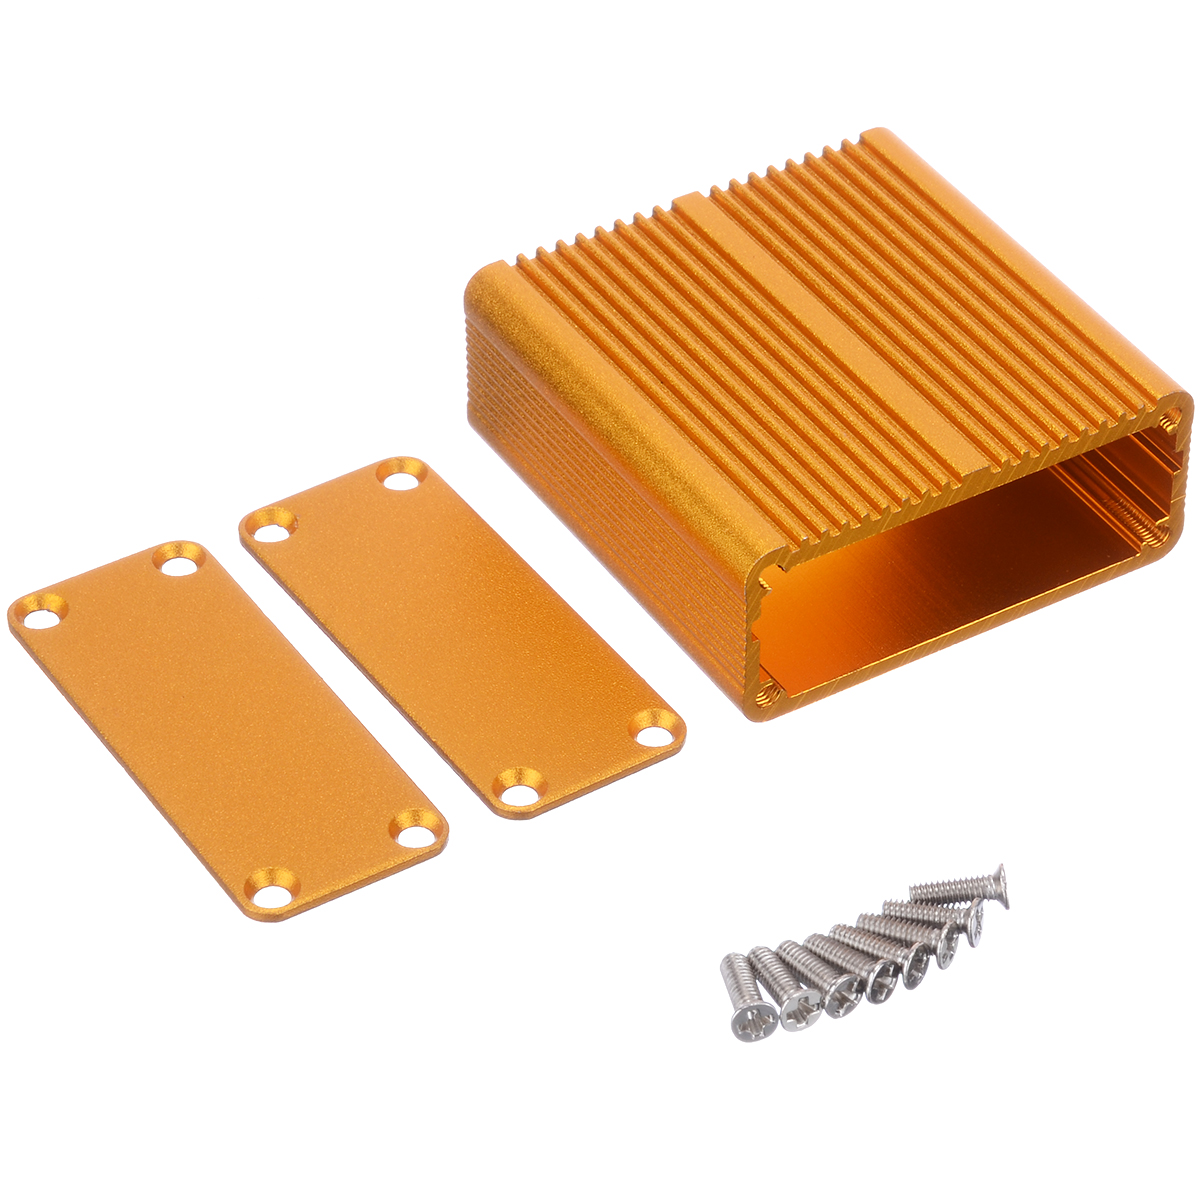 Gold Aluminum PCB Instrument Enclosure Box Electric Project Case 45x45x18.5mm For Holding Circuit Bo